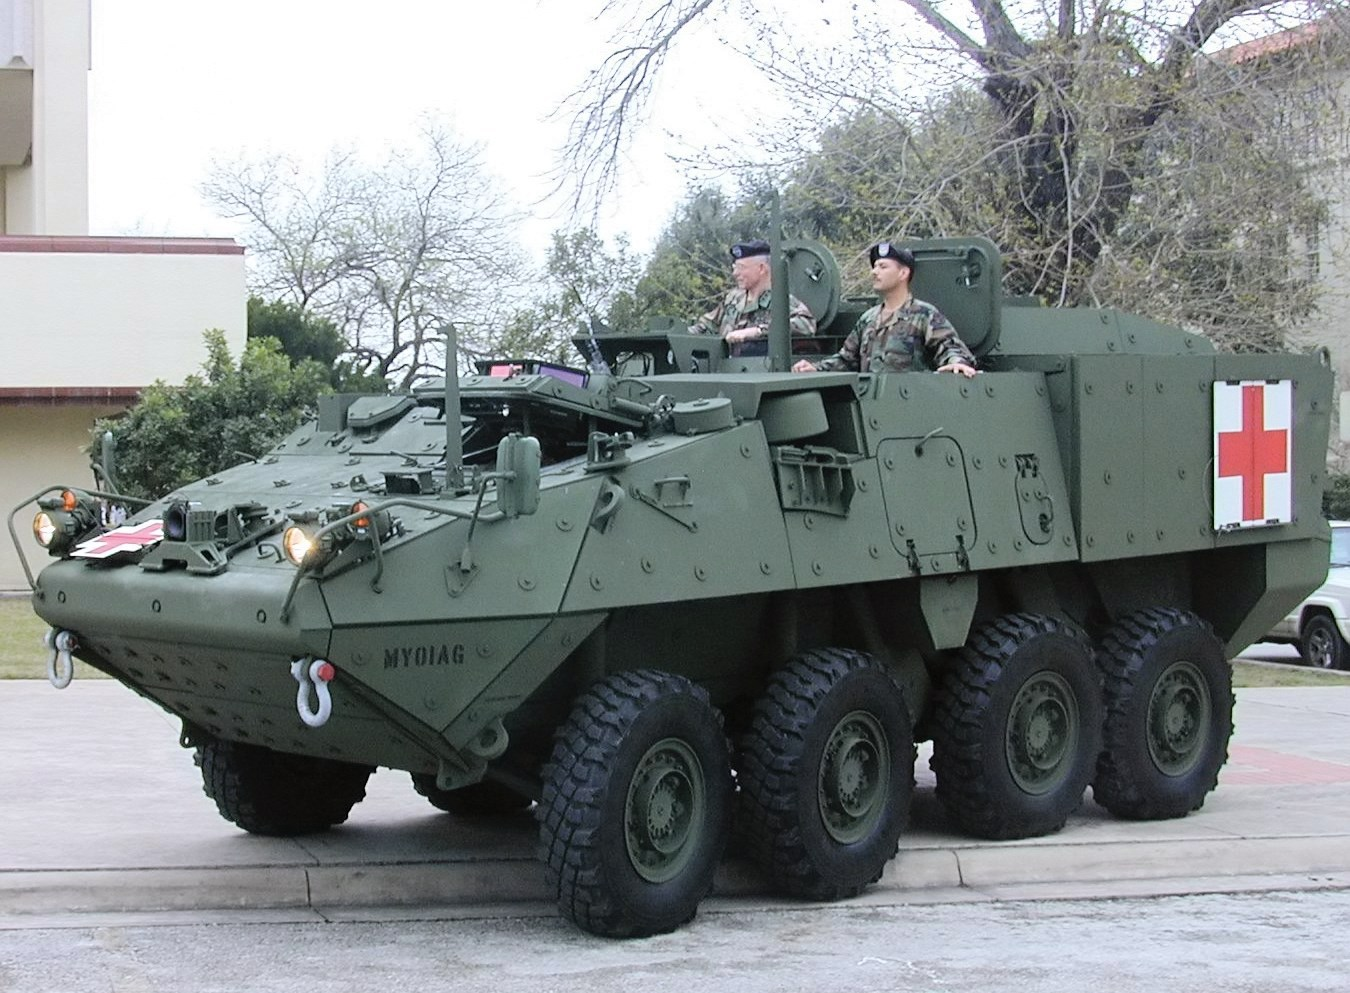 Image of United States Army Stryker